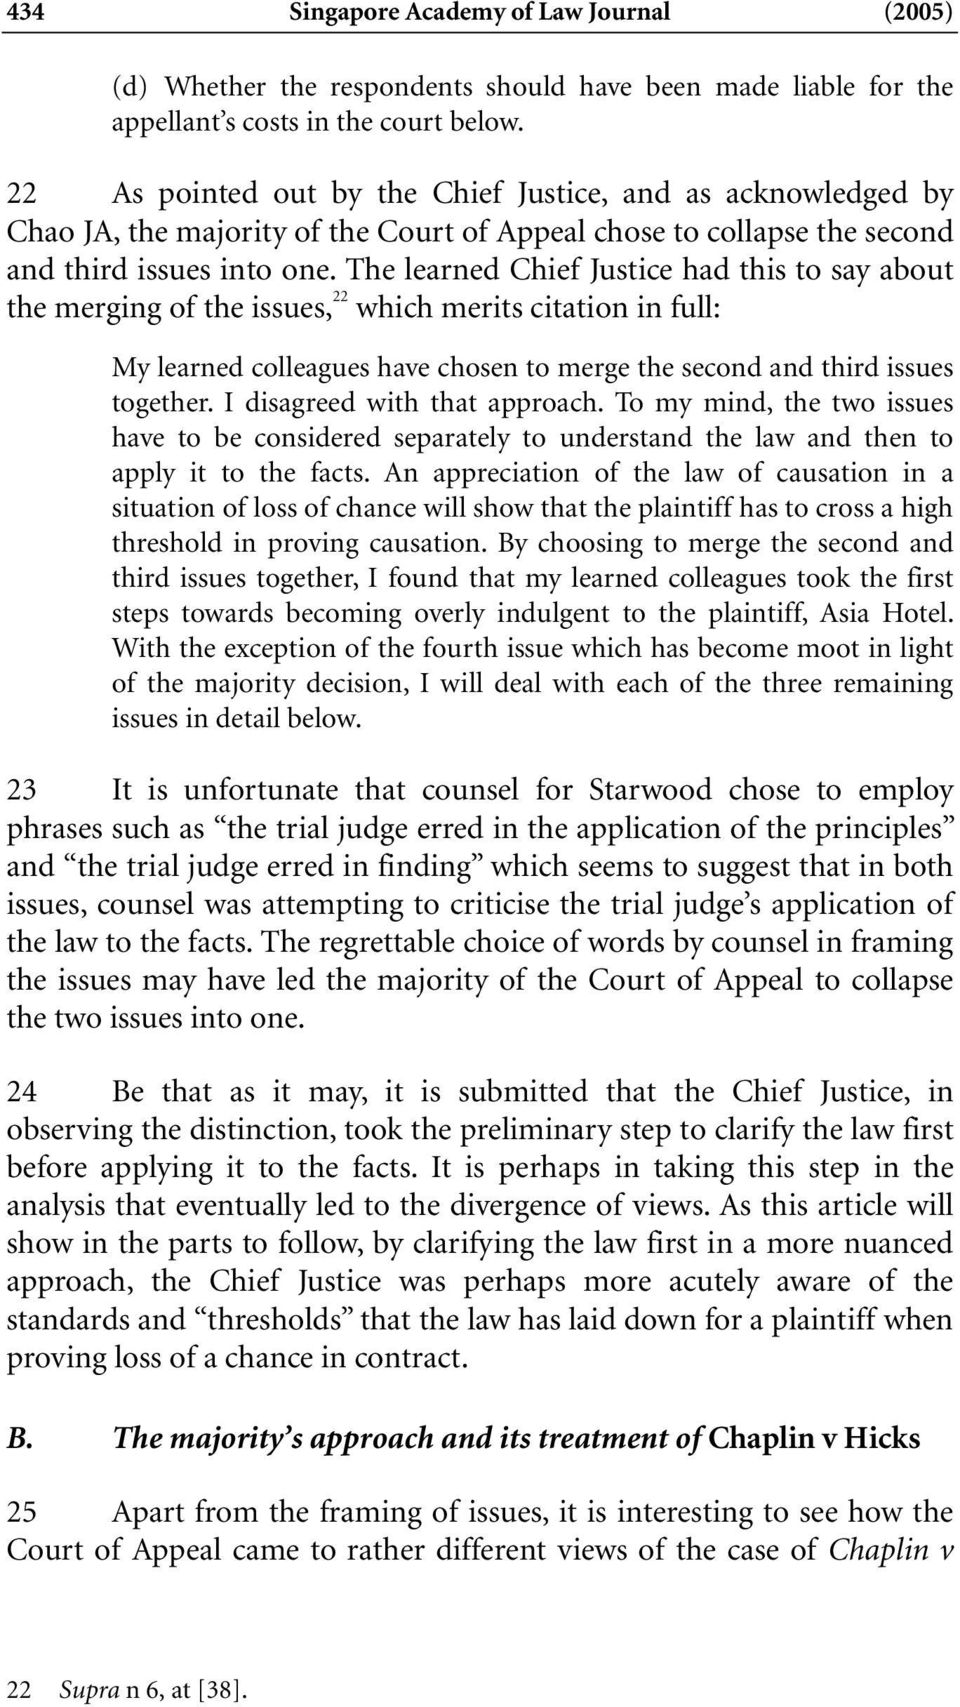 The learned Chief Justice had this to say about the merging of the issues, 22 which merits citation in full: My learned colleagues have chosen to merge the second and third issues together.